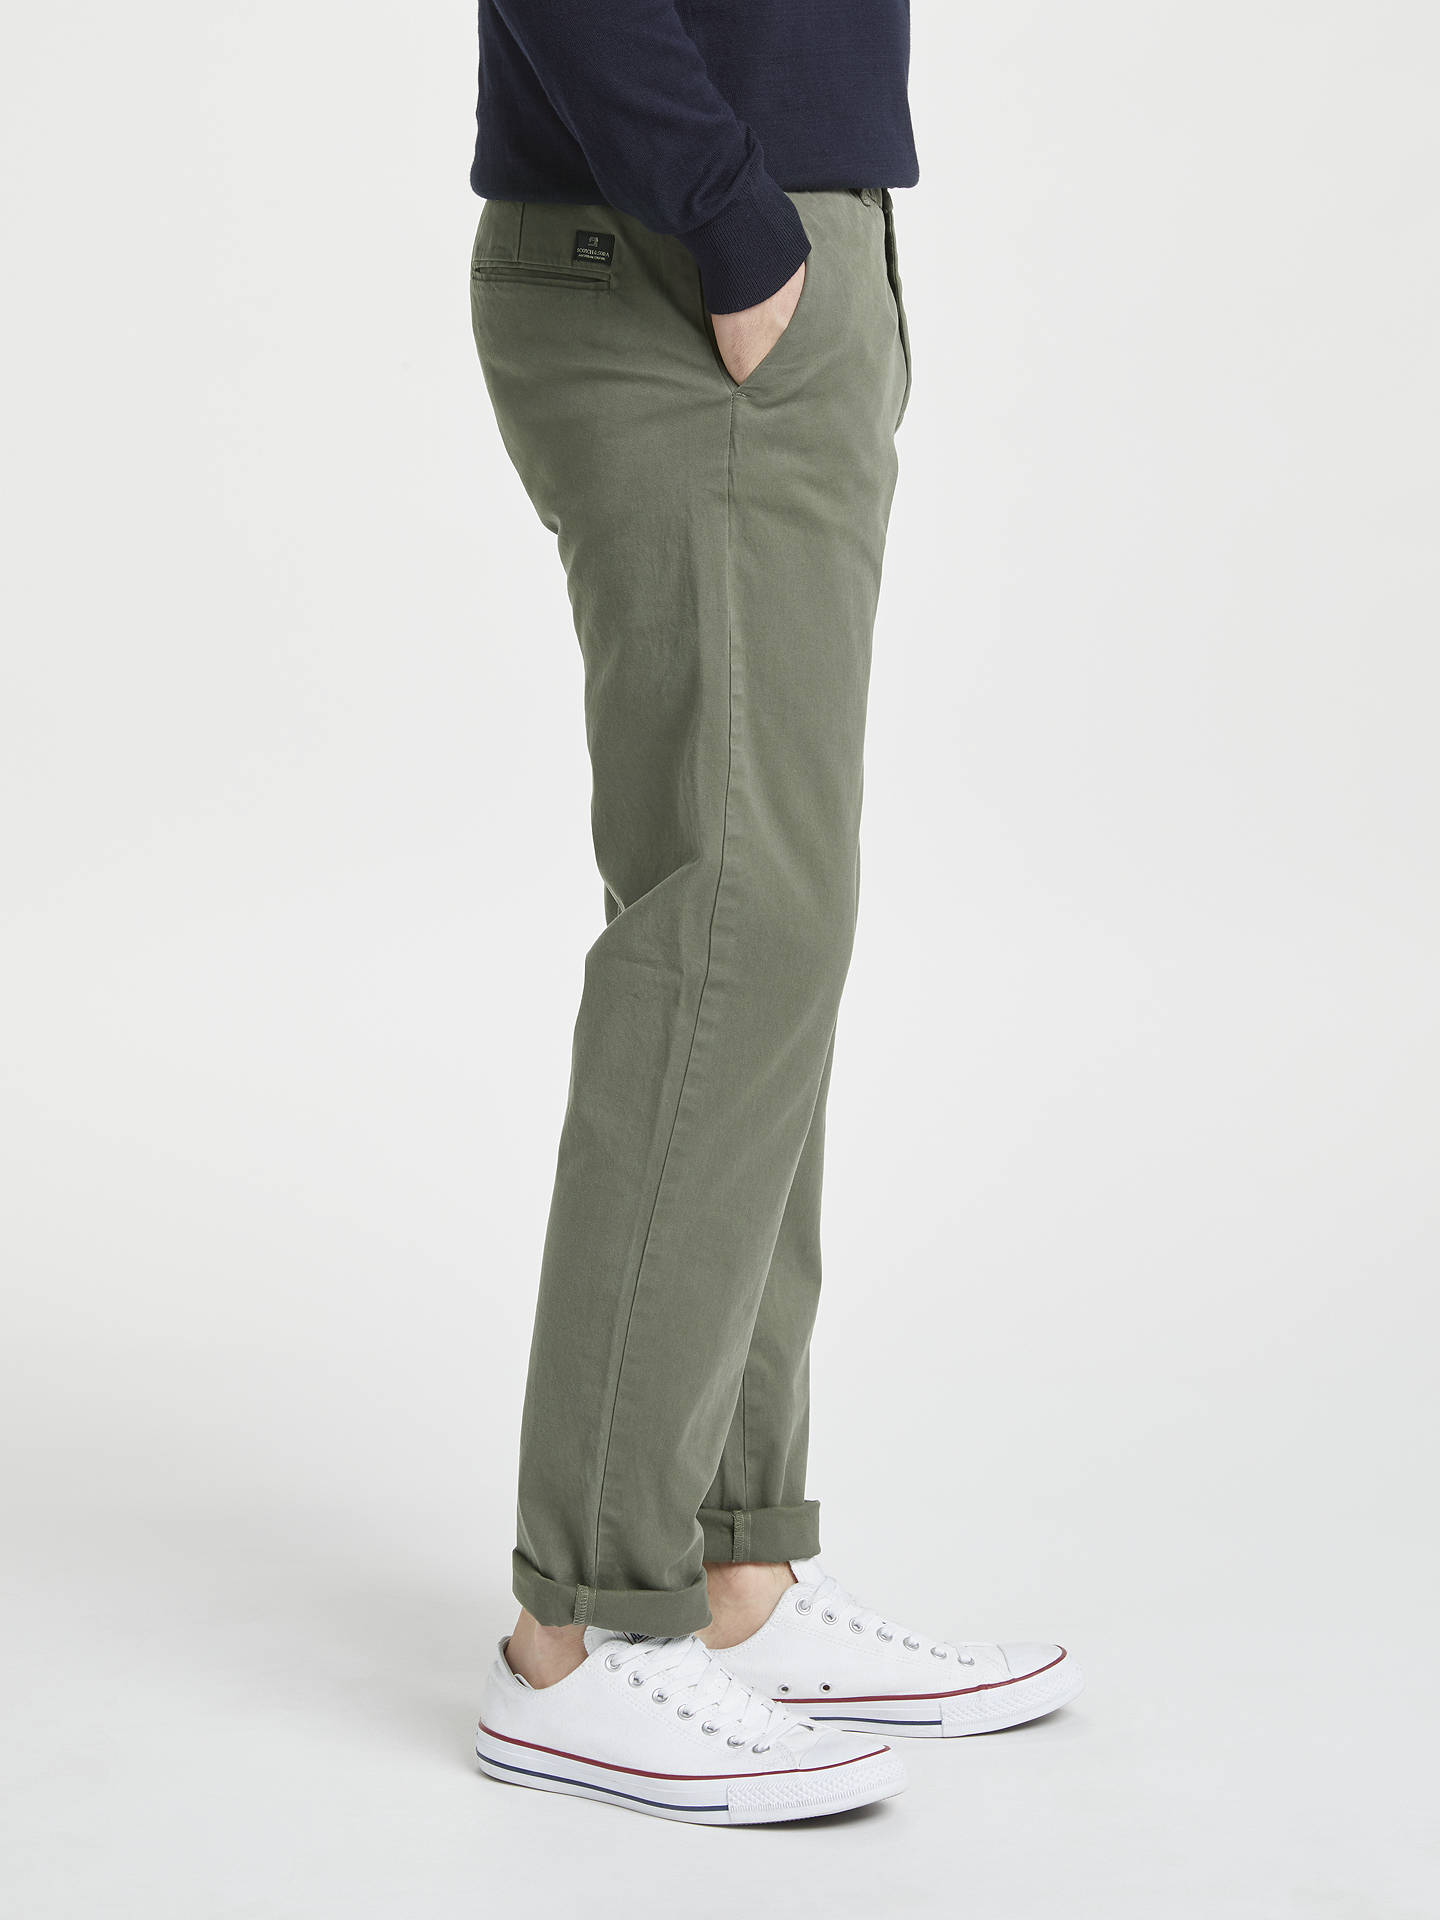 Buy Scotch & Soda Stuart Peached Twill Chinos, Grey, 30R Online at johnlewis.com